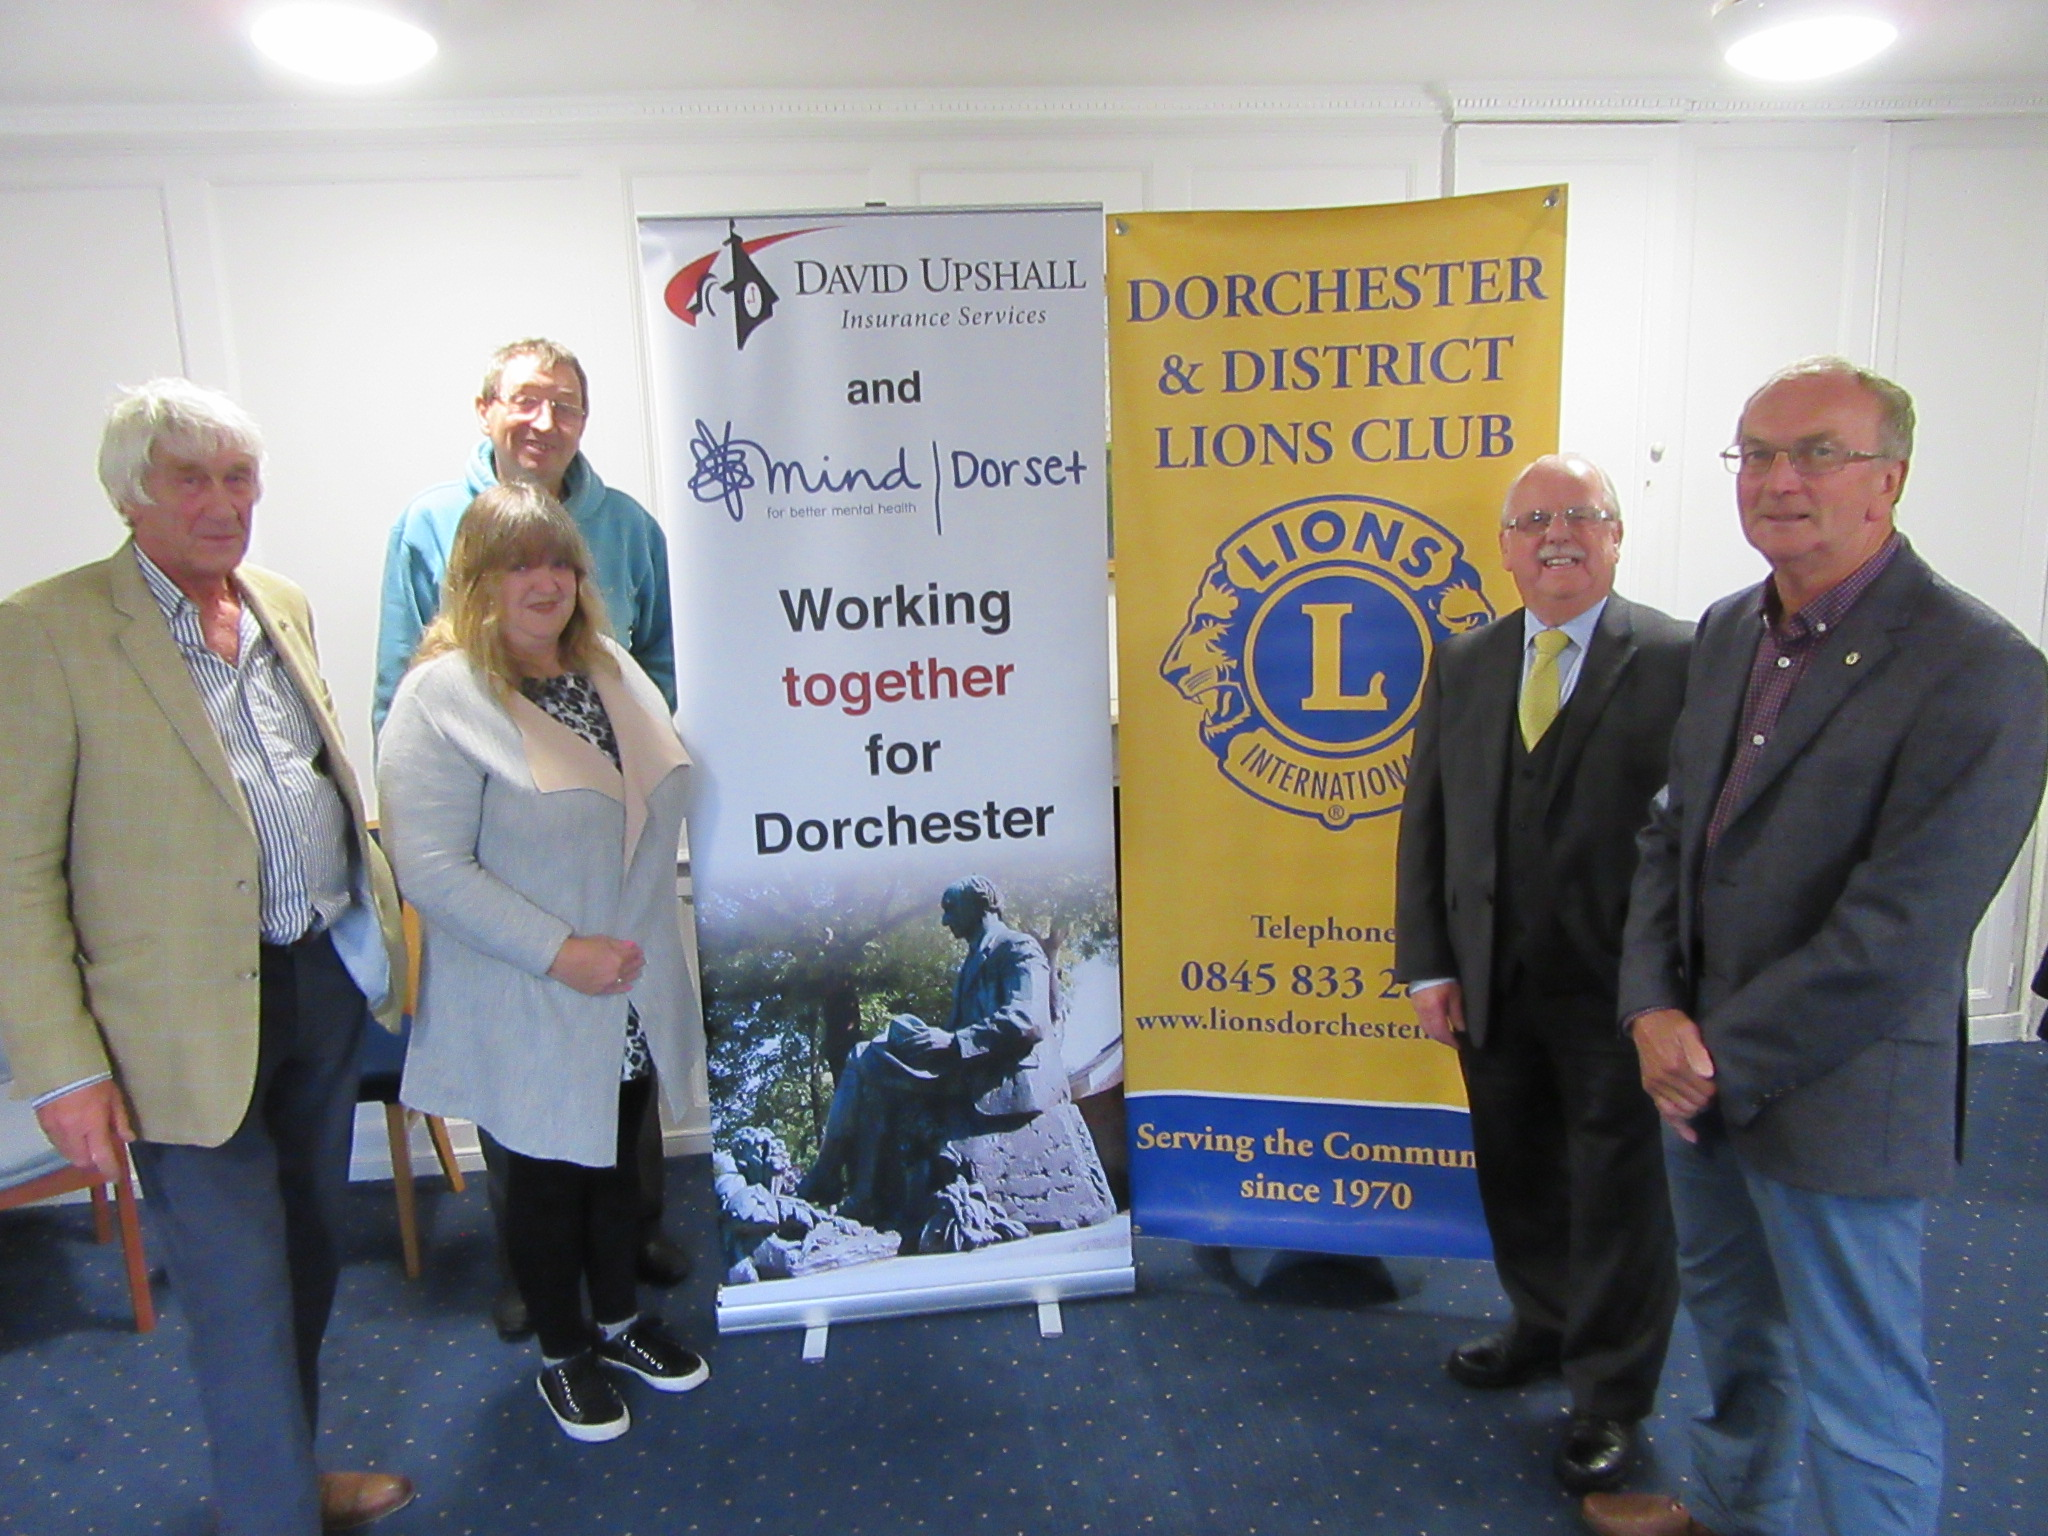 CAMPAIGN: (left to right) Former president of Dorchester and District Lions Rick Rogers, Anita Harries, Tim Harries, David Upshall and current president of Dorchester and District Lions Tony Howden.